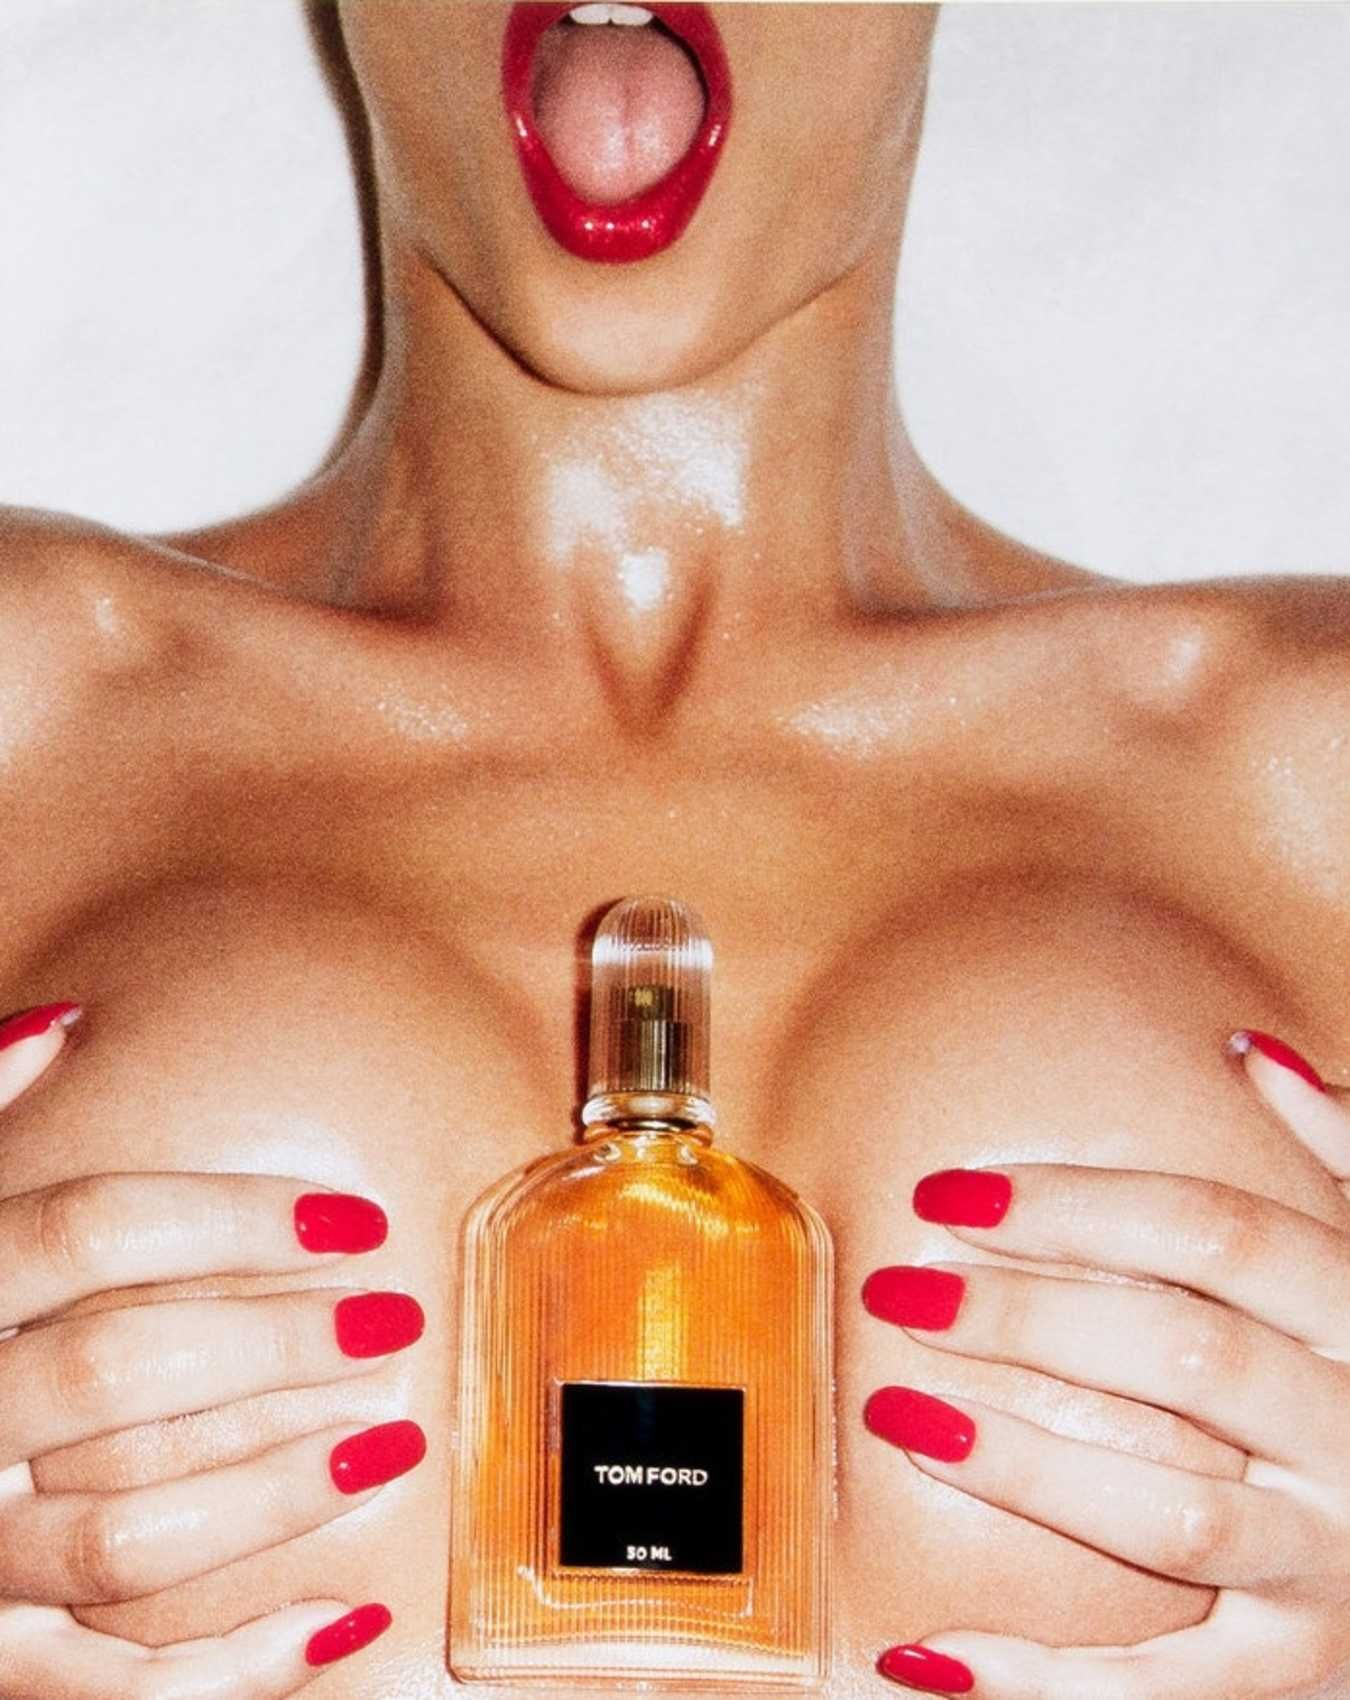 Risultati immagini per Tom Ford for men (2007)